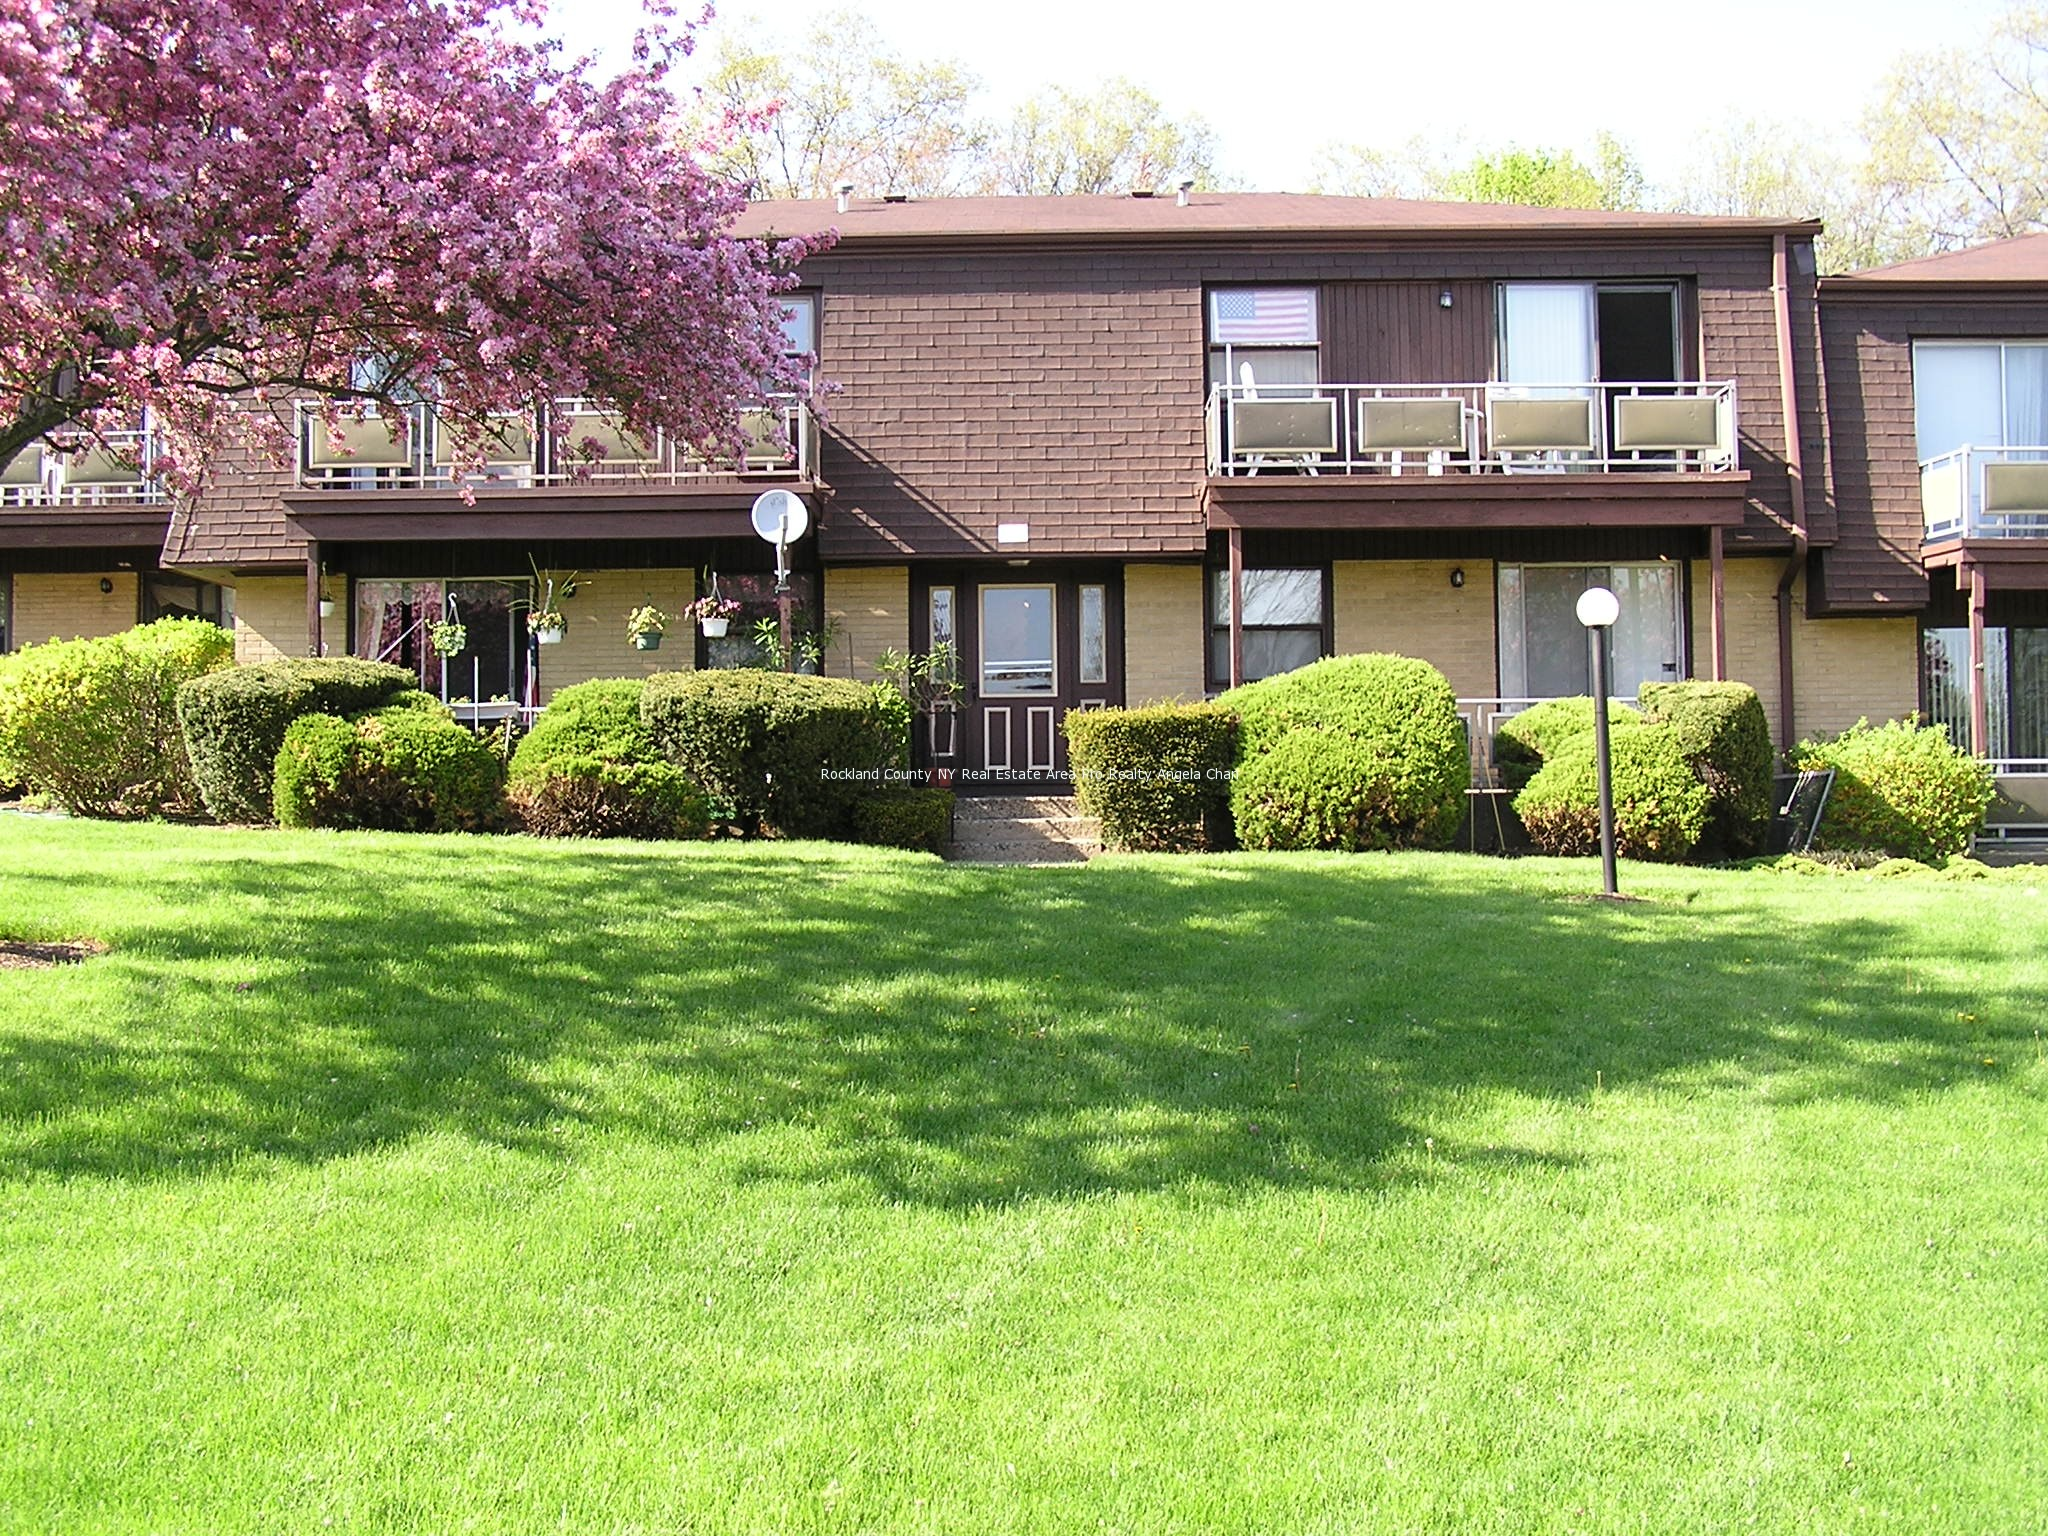 Bardonia Condos and Townhouses for sale in Rockland  County NY Germonds Village